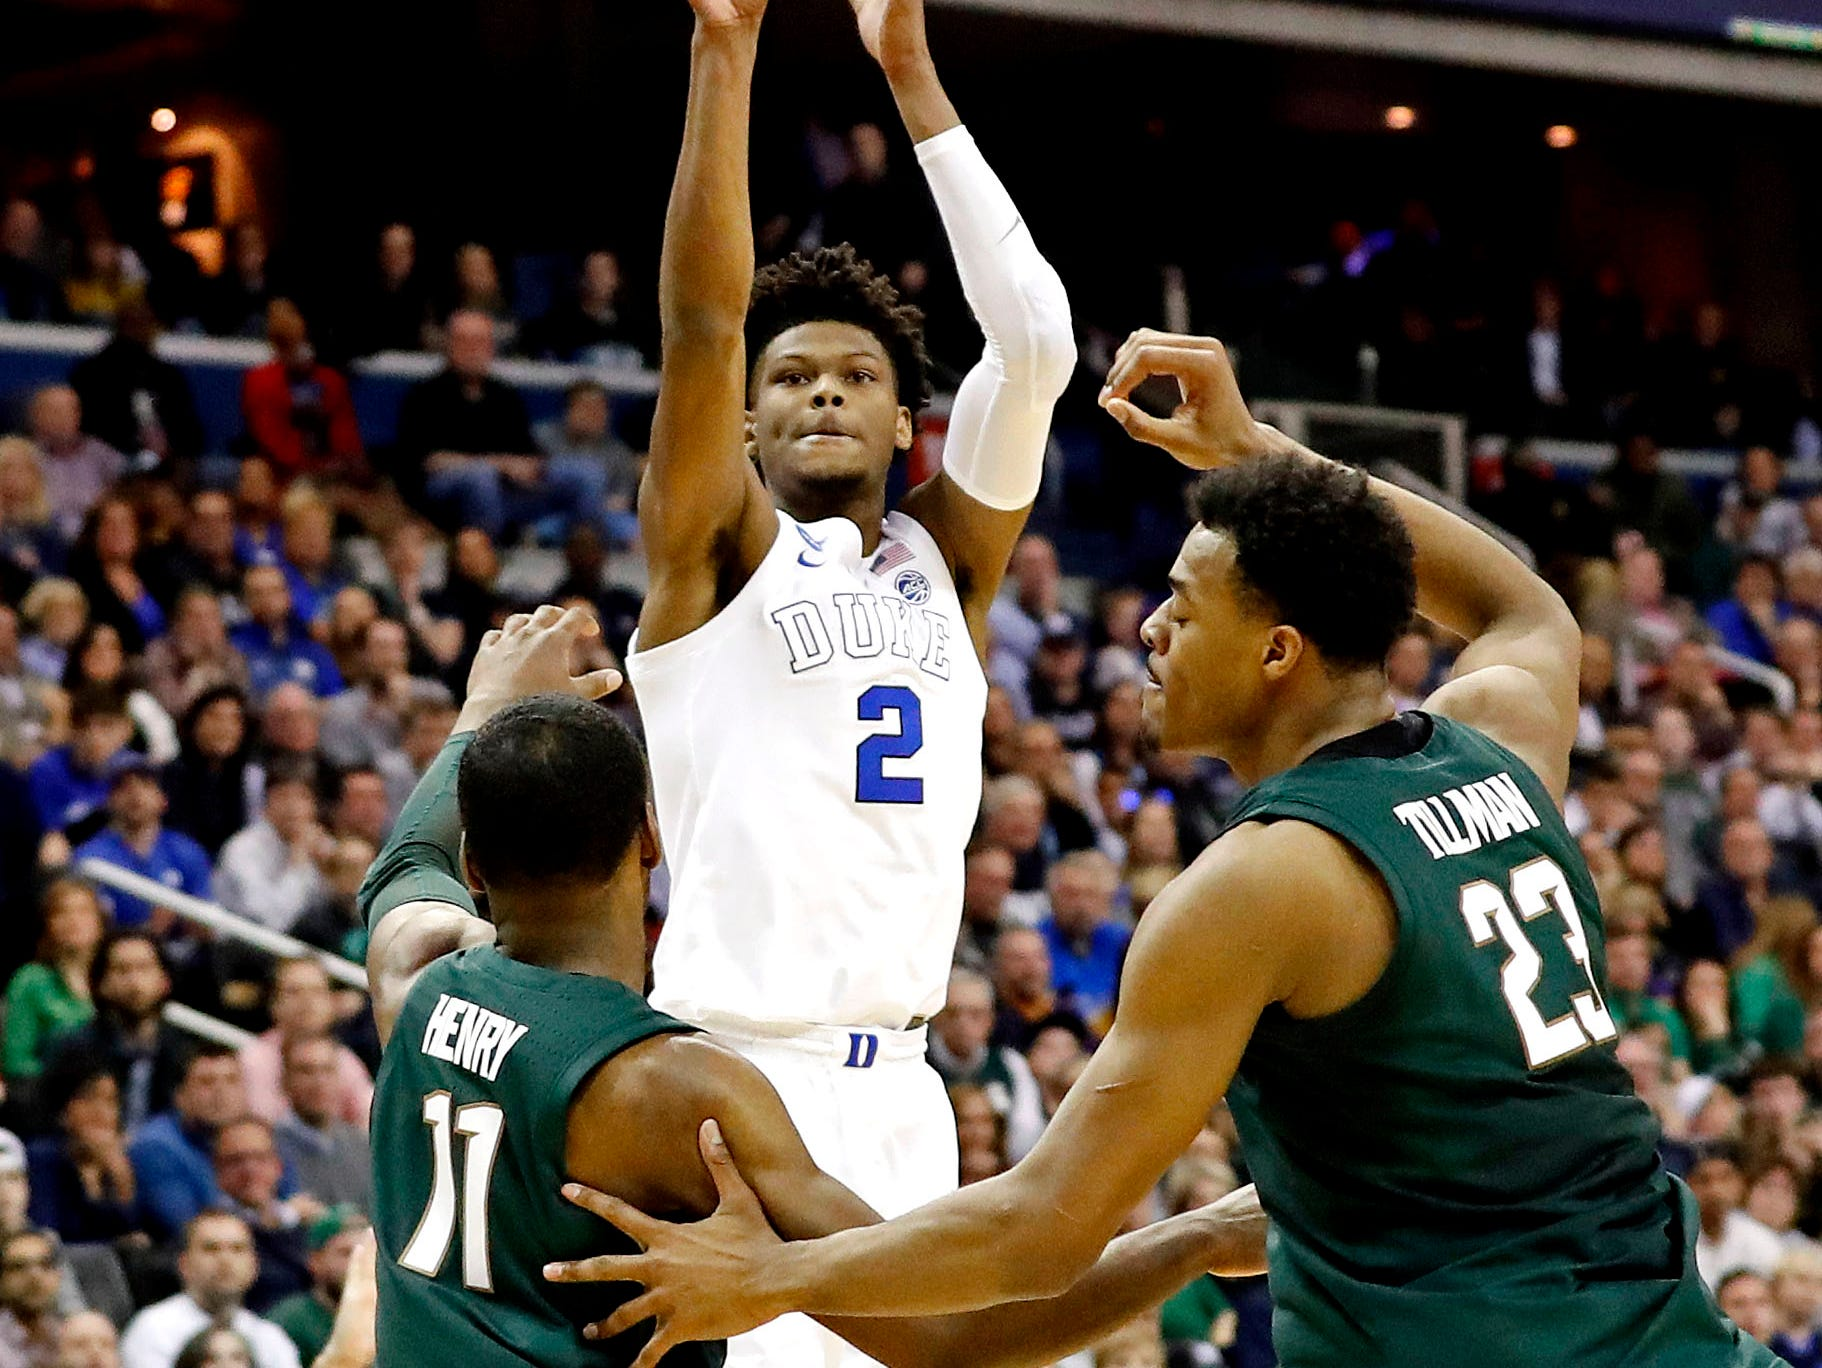 Mar 31, 2019; Washington, DC, USA; Duke Blue Devils forward Cam Reddish (2) shoots the ball against Michigan State Spartans forward Aaron Henry (11) and forward Xavier Tillman (23) during the first half in the championship game of the east regional of the 2019 NCAA Tournament at Capital One Arena. Mandatory Credit: Geoff Burke-USA TODAY Sports